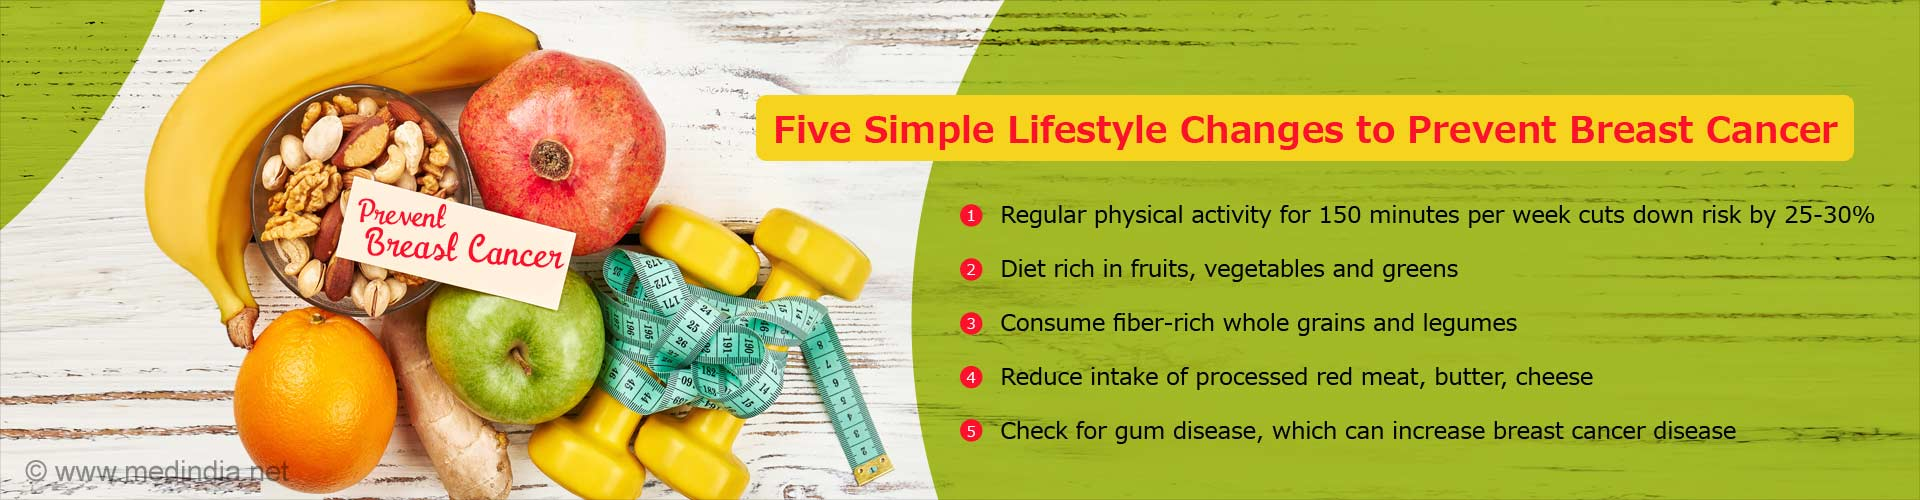 Five Simple Lifestyle Changes To Prevent Breast Cancer